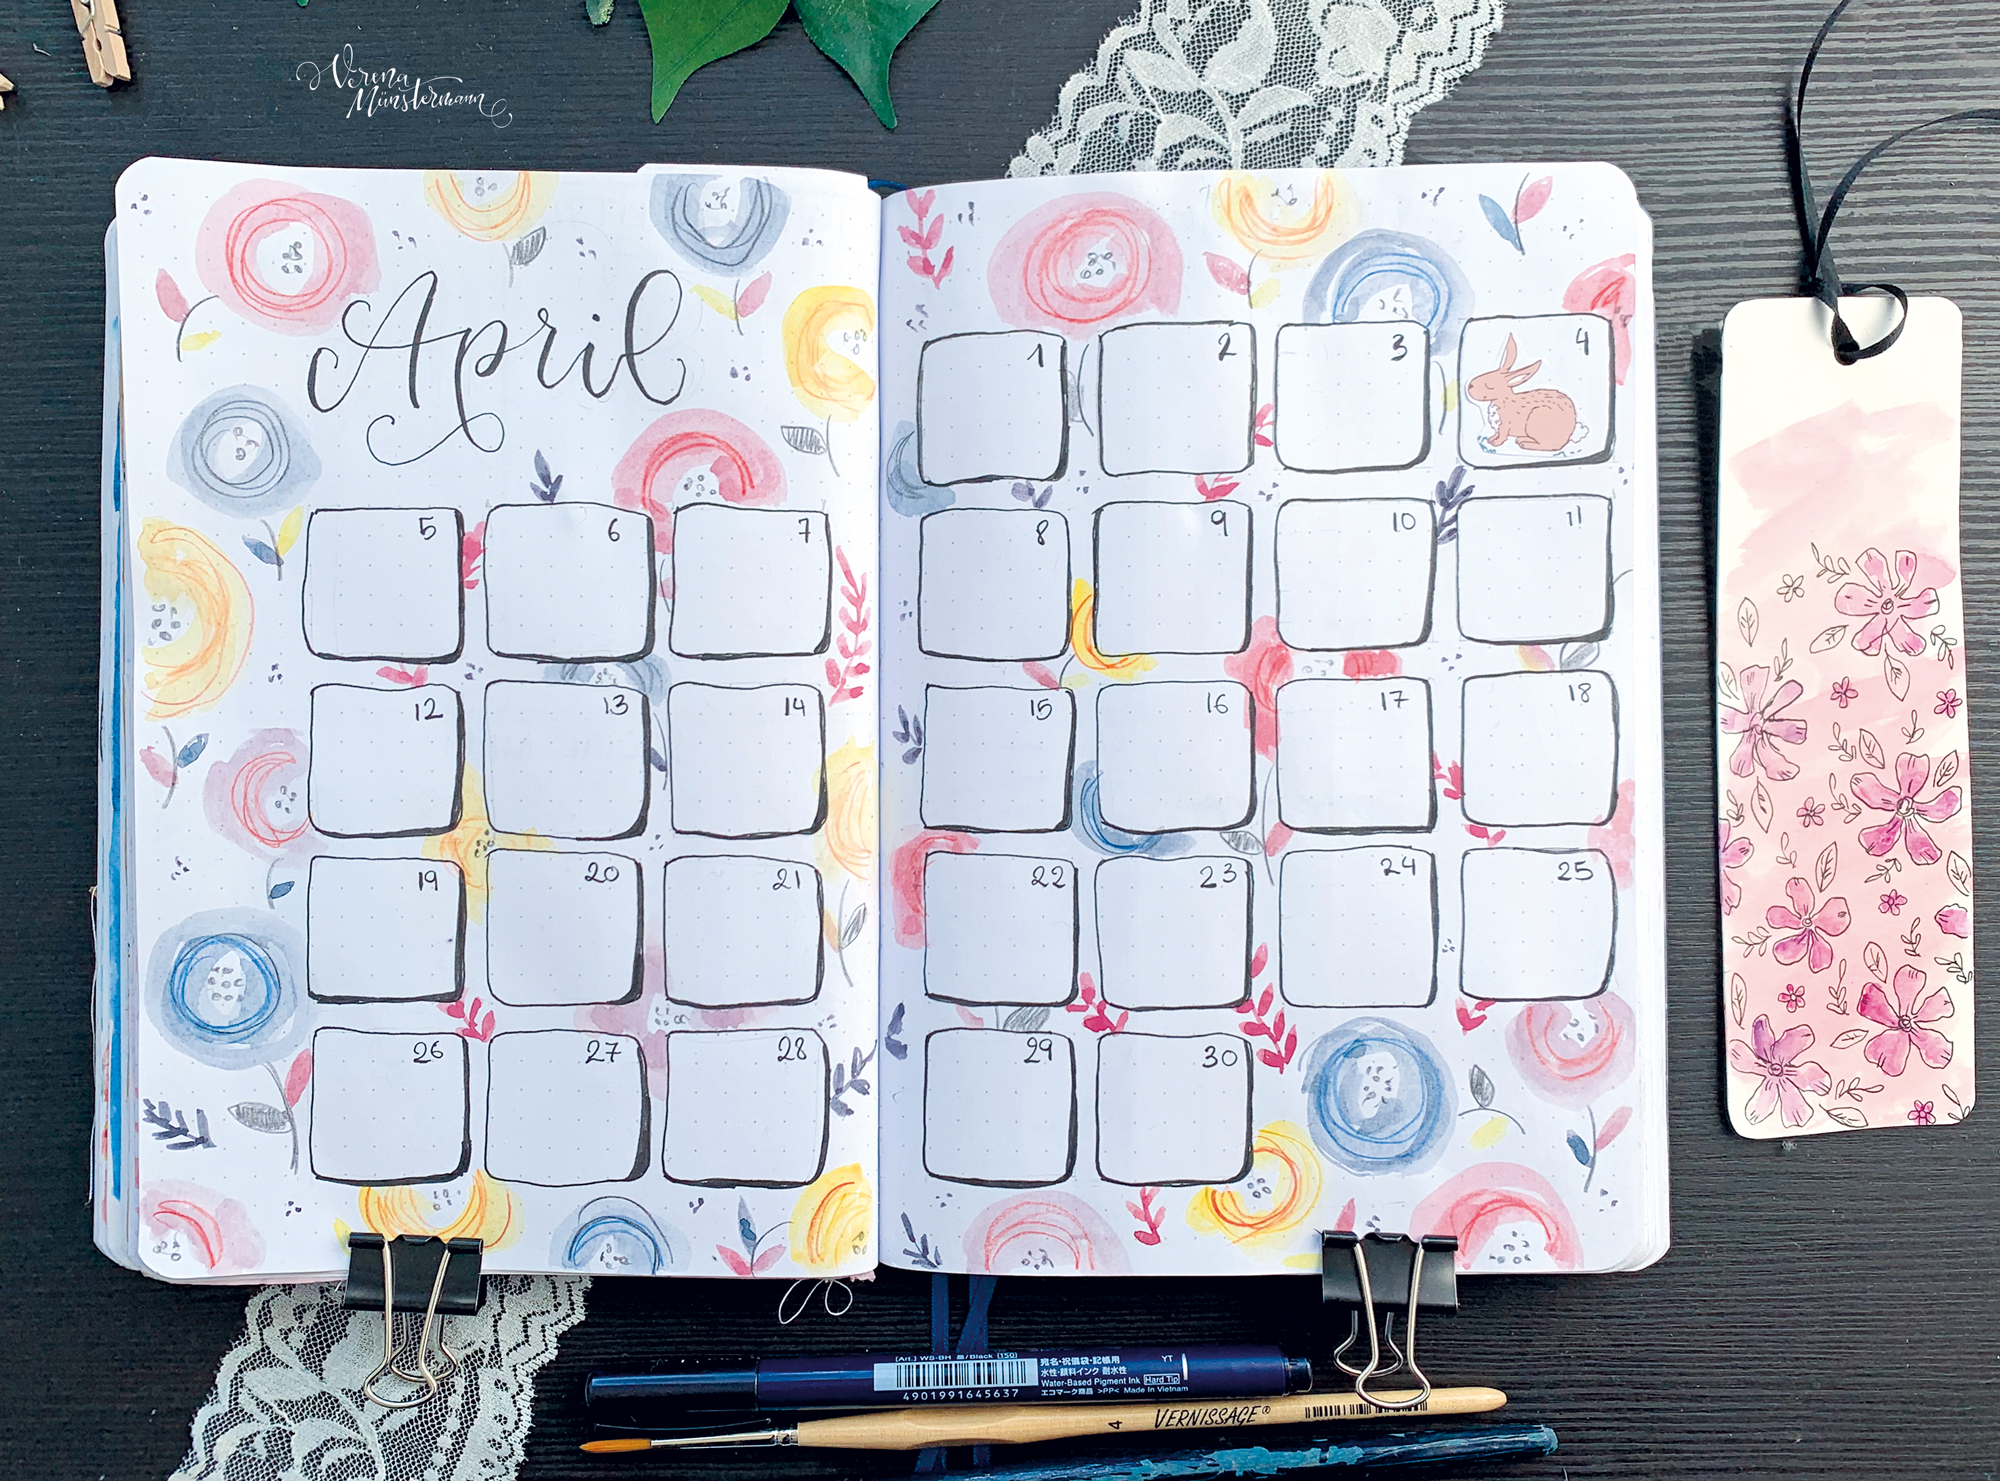 Bullet Journal Setup - April - Titelblatt - verenamuenstermann